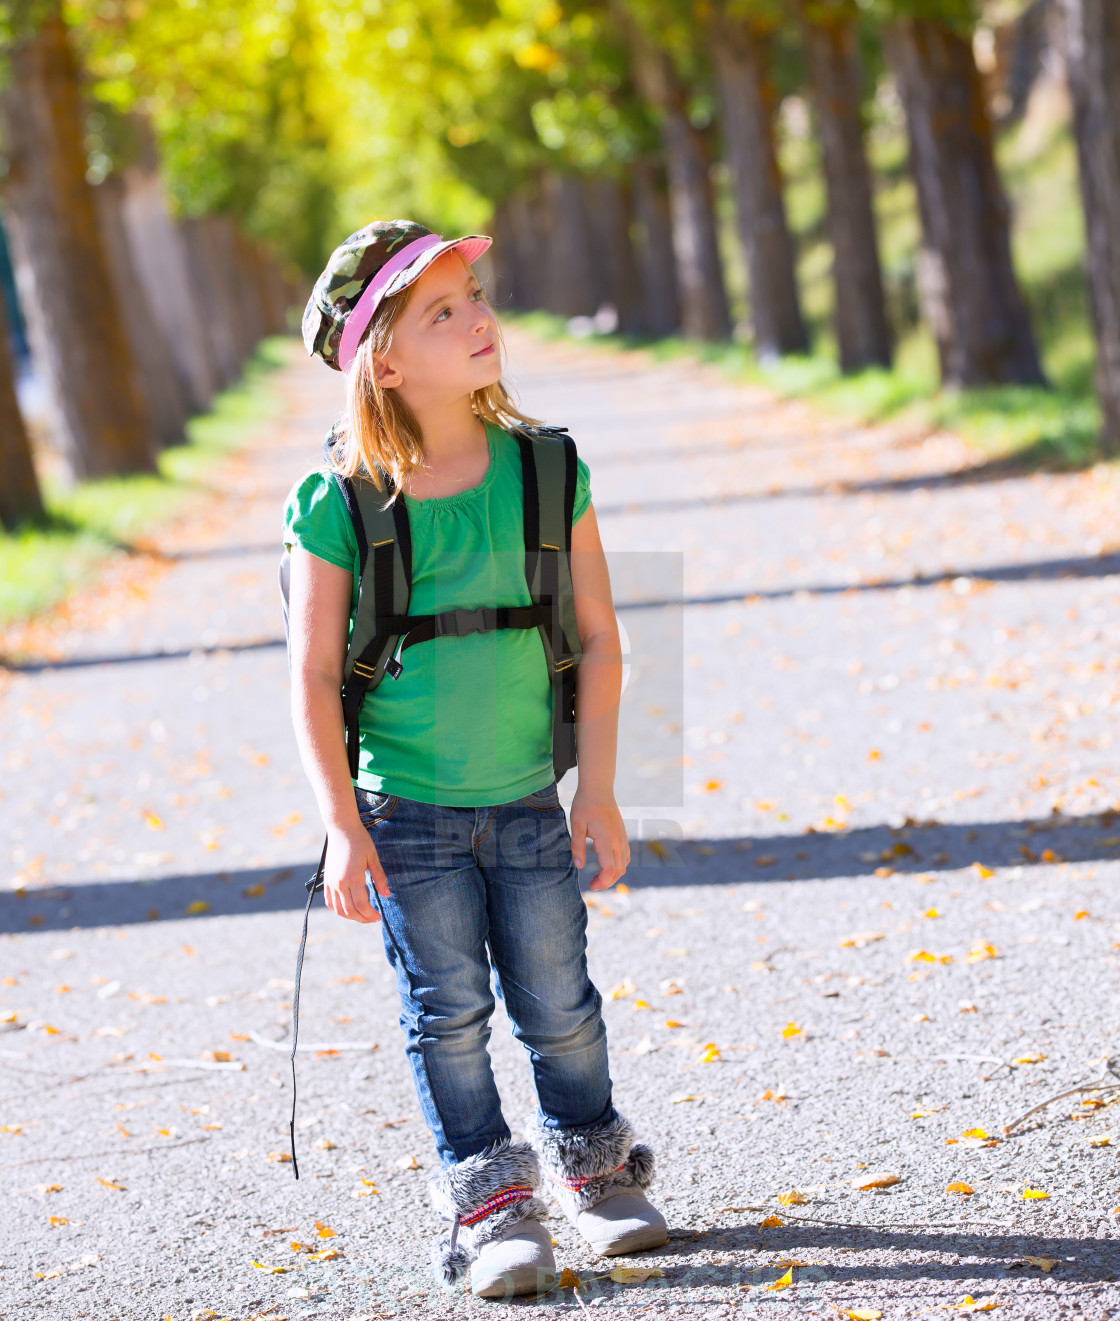 """""""Blond explorer kid girl walking with backpack in autumn trees"""" stock image"""